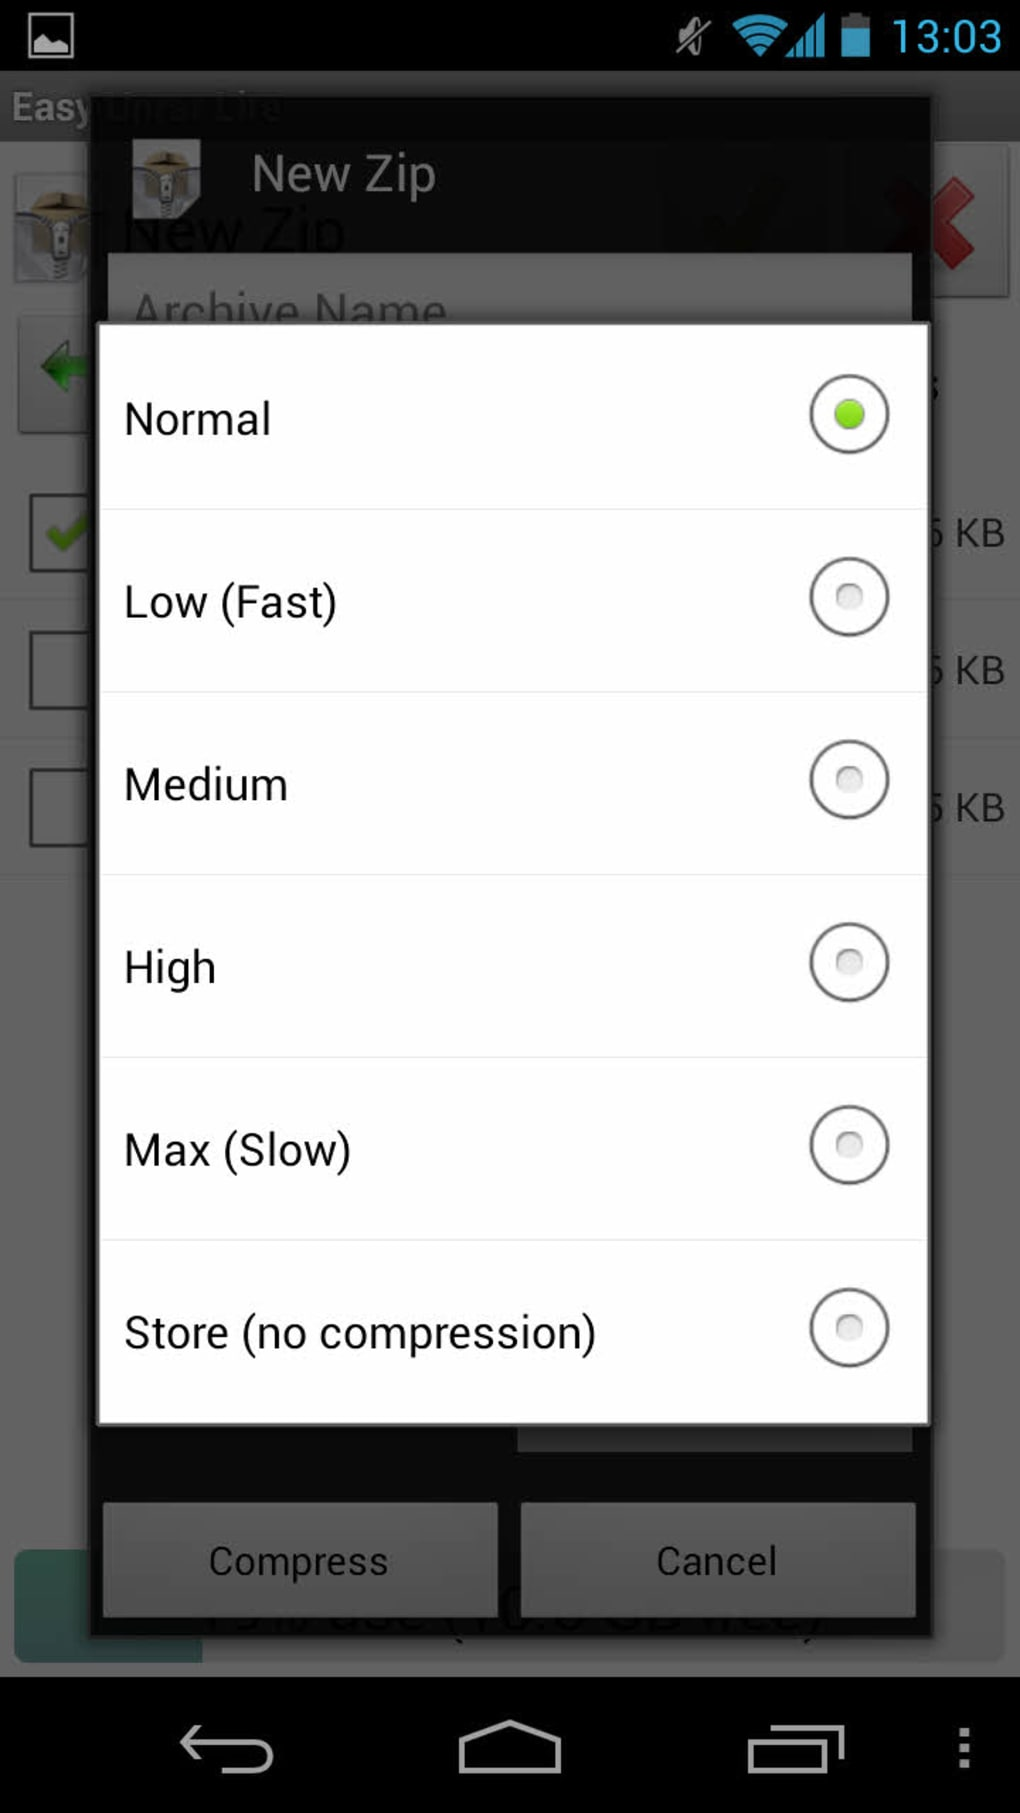 Easy Unrar, Unzip & Zip for Android - Download